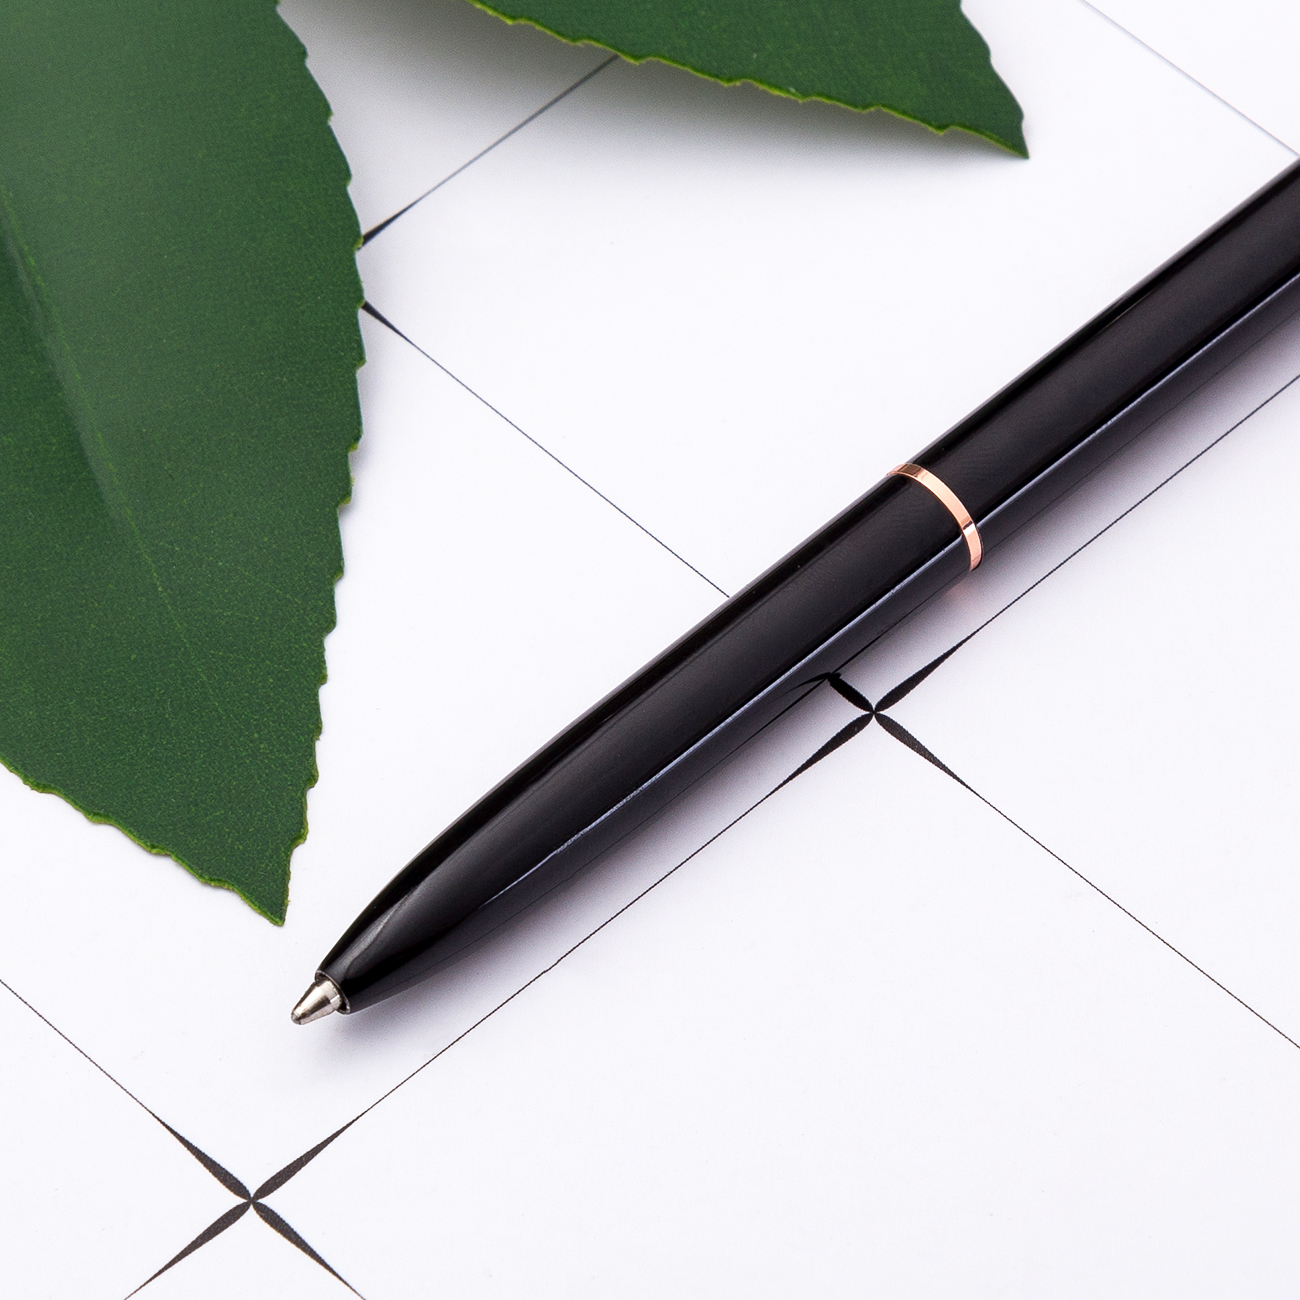 Huahao Butterfly Shape Diamond Pen Promotional Customized Logo Printed Metal Ball Point Pens